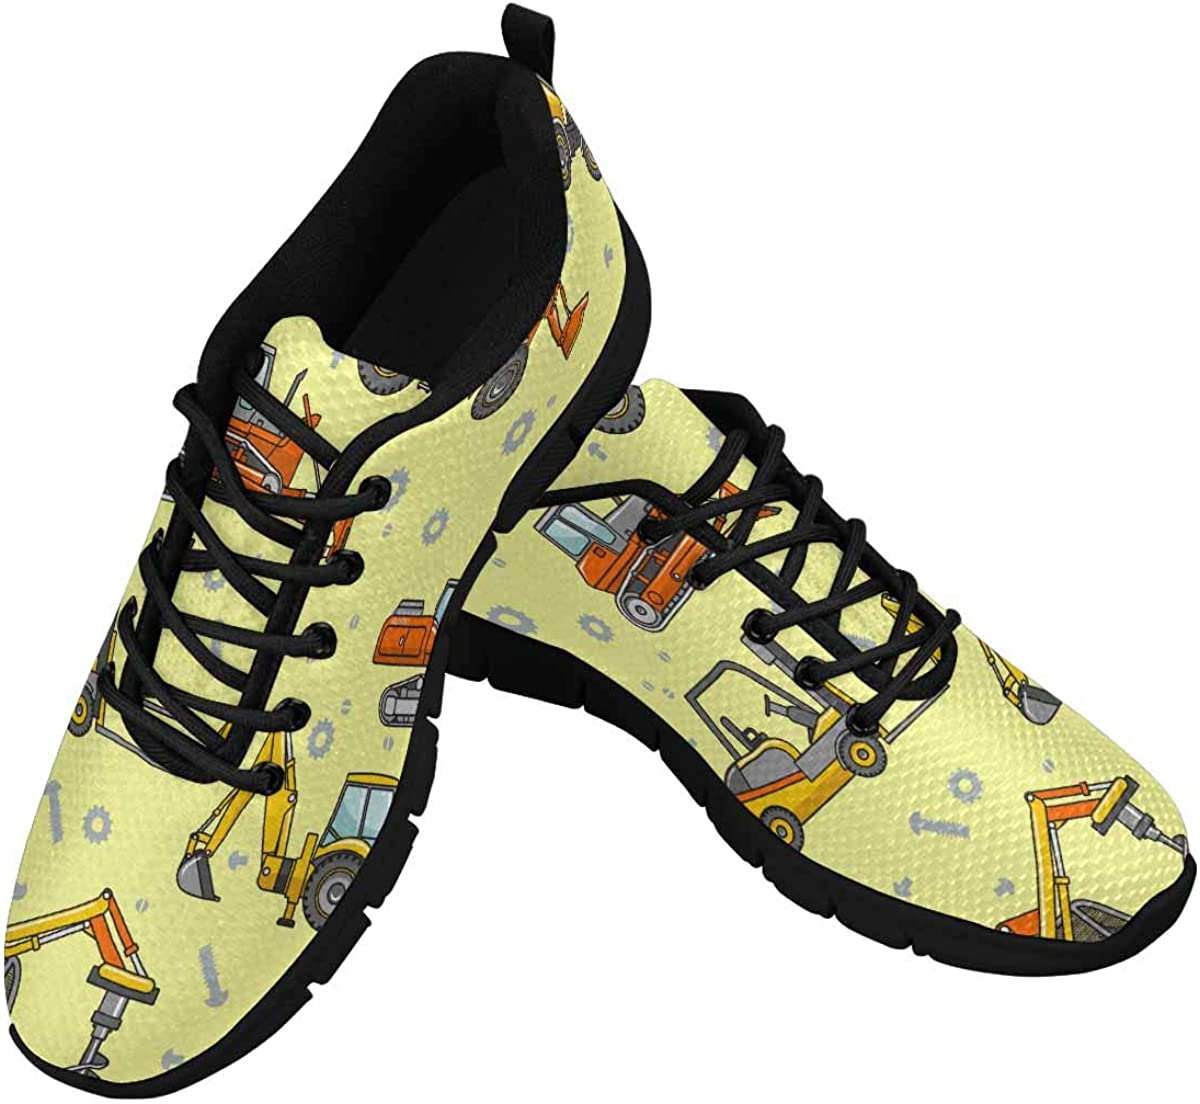 InterestPrint Heavy Machines Cartoon Machinery Women's Athletic Mesh Breathable Casual Sneakers Fashion Tennis Shoes